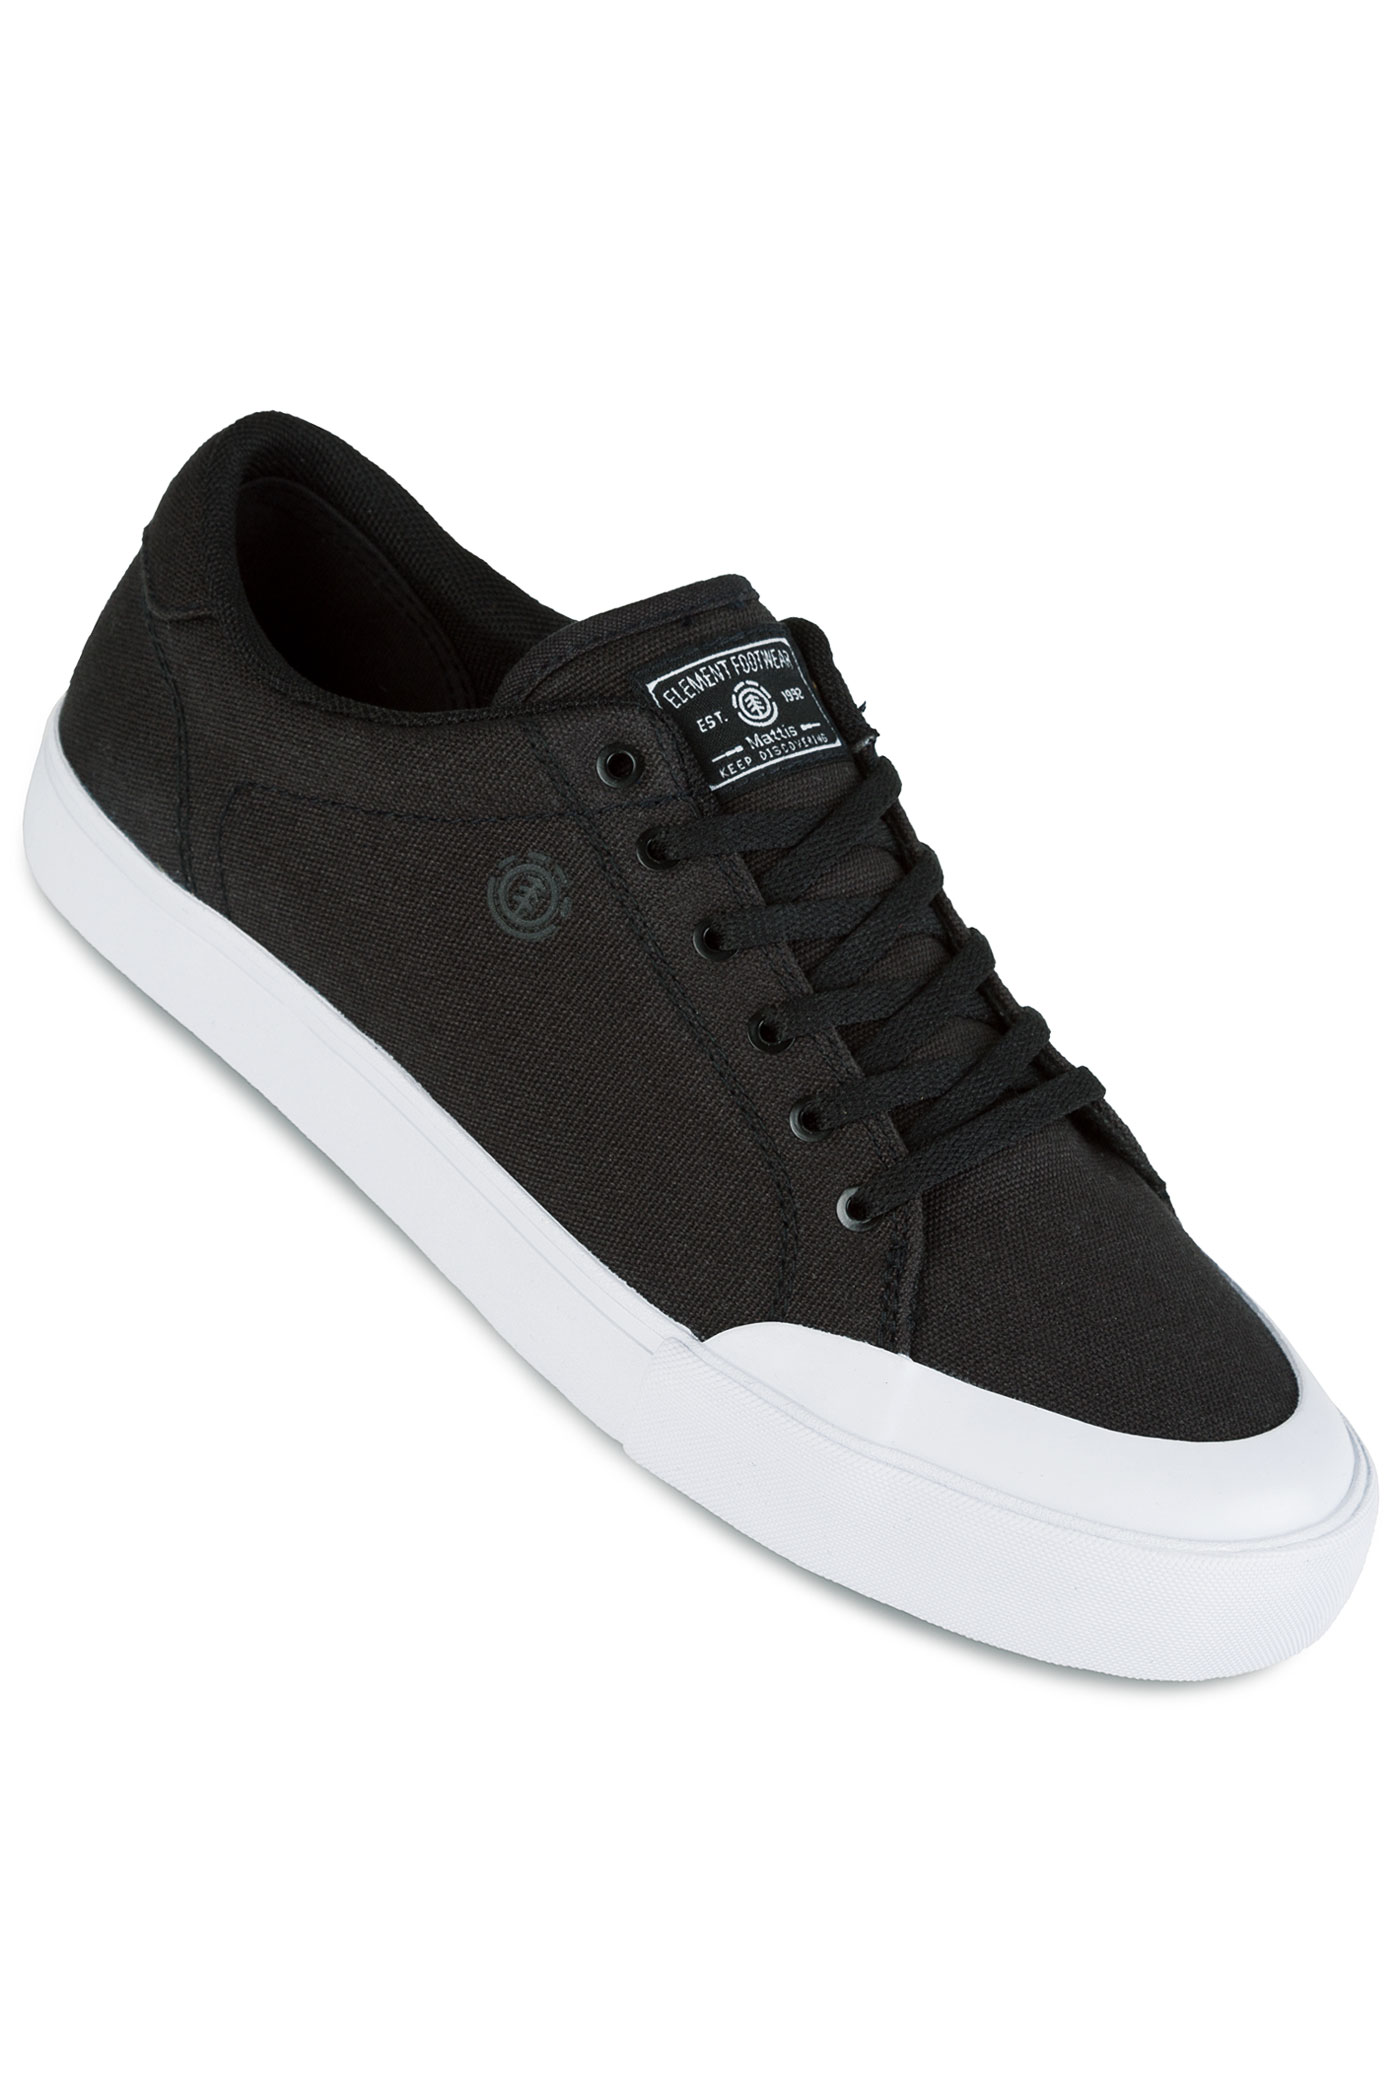 element mattis canvas shoes black white buy at skatedeluxe